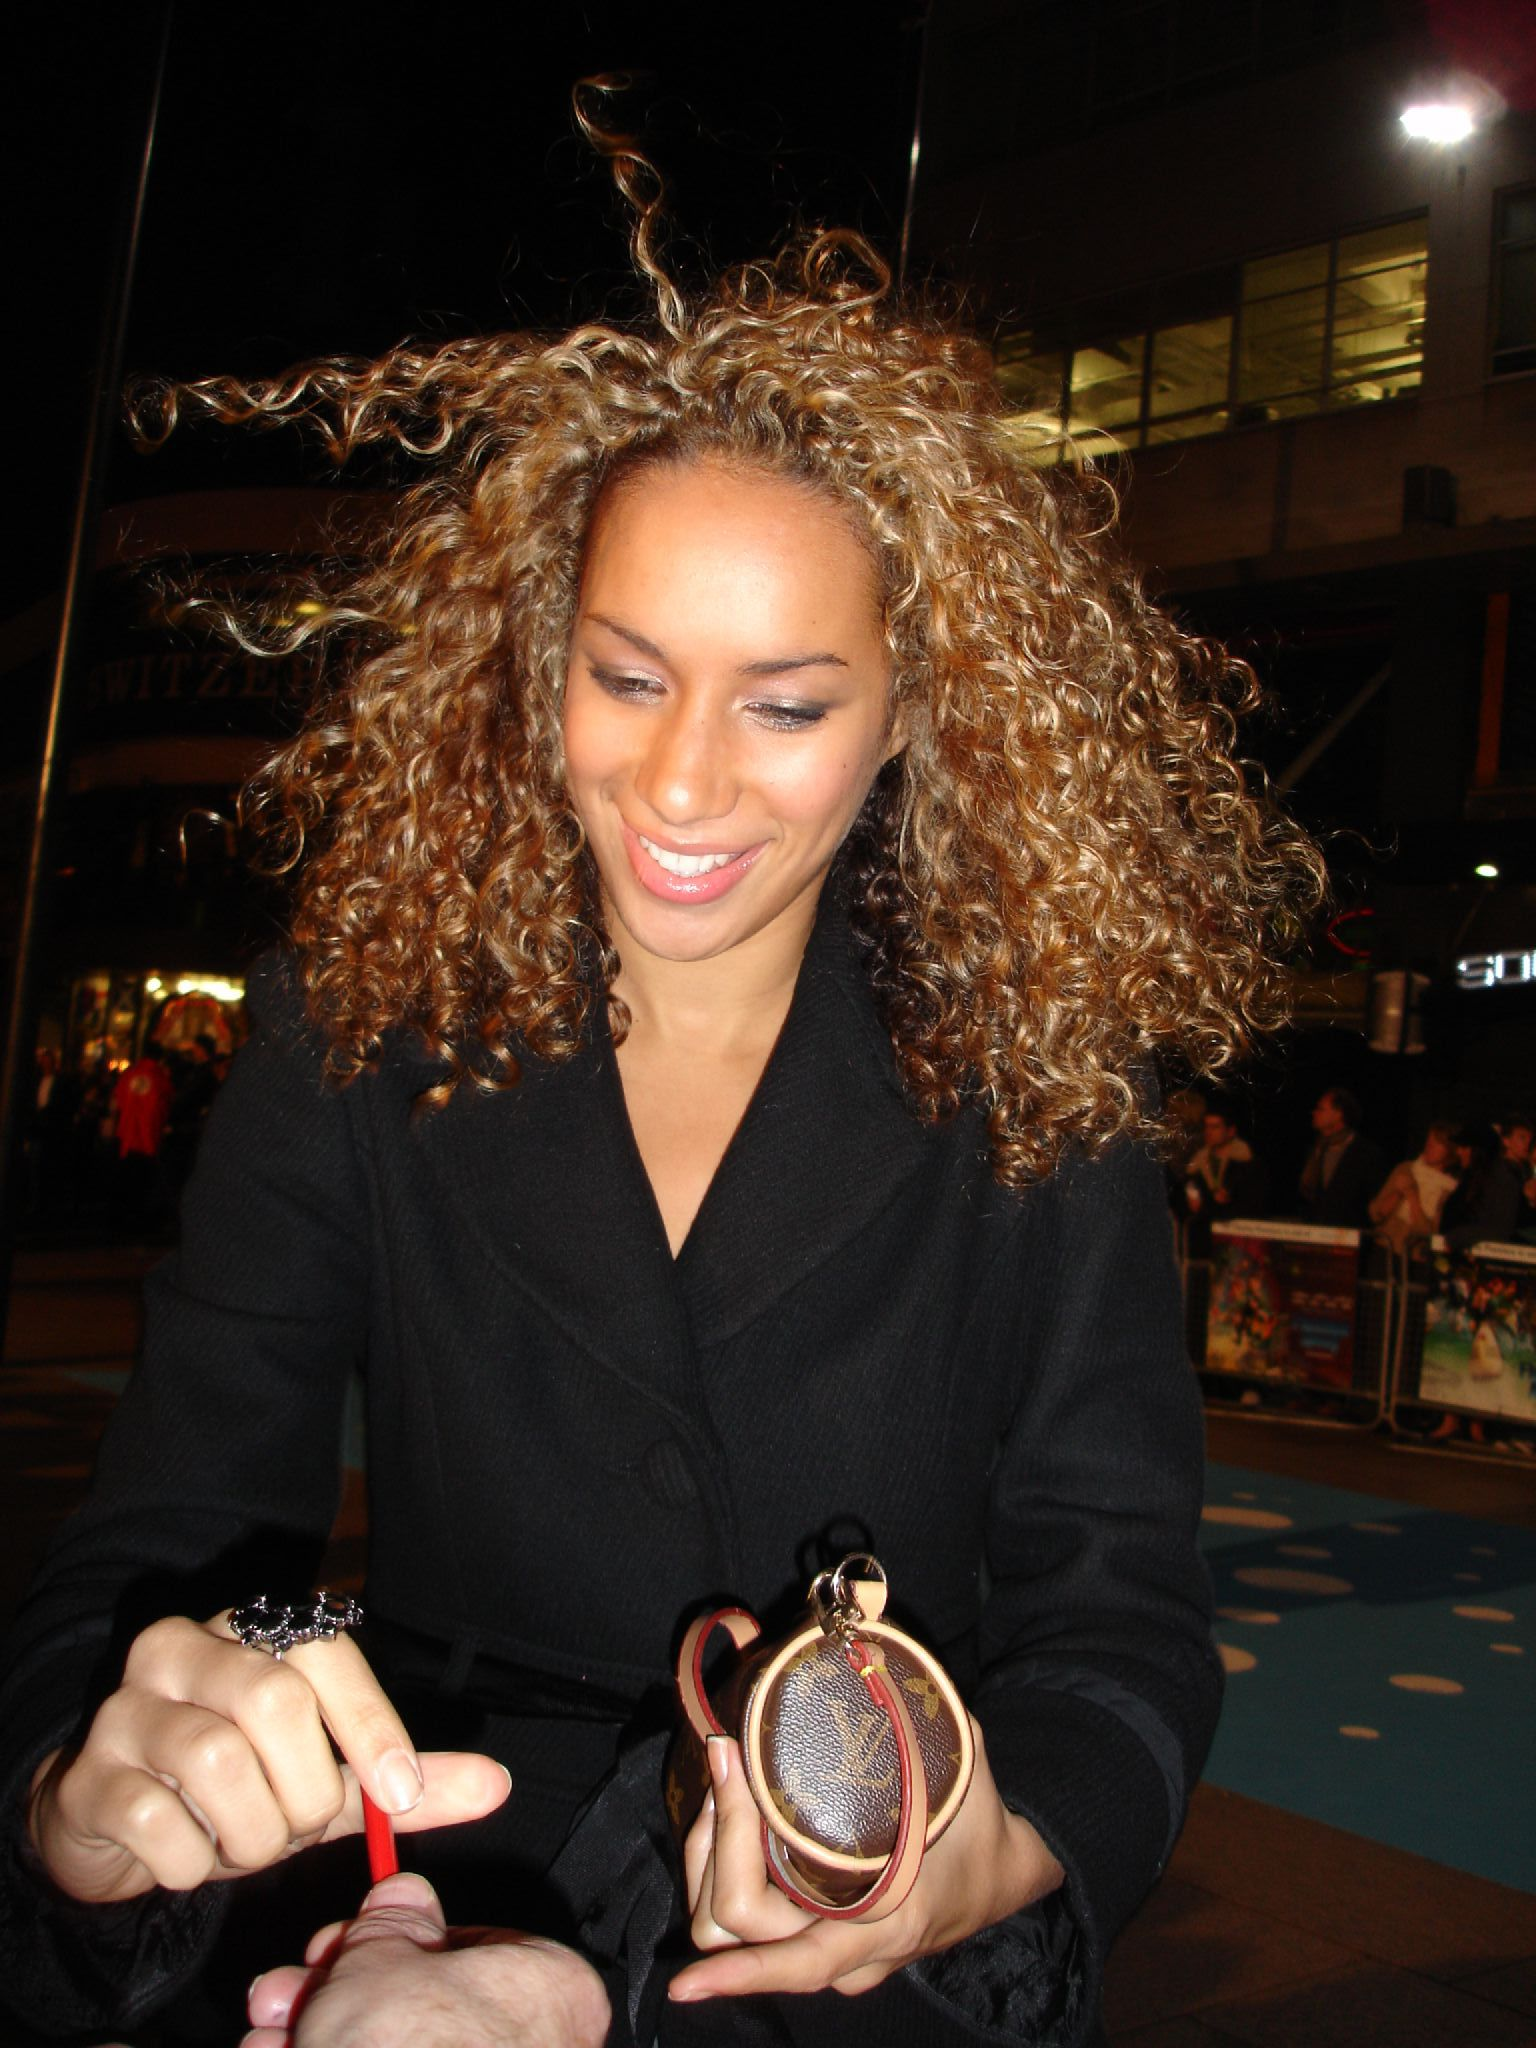 Description Leona Lewis.jpg